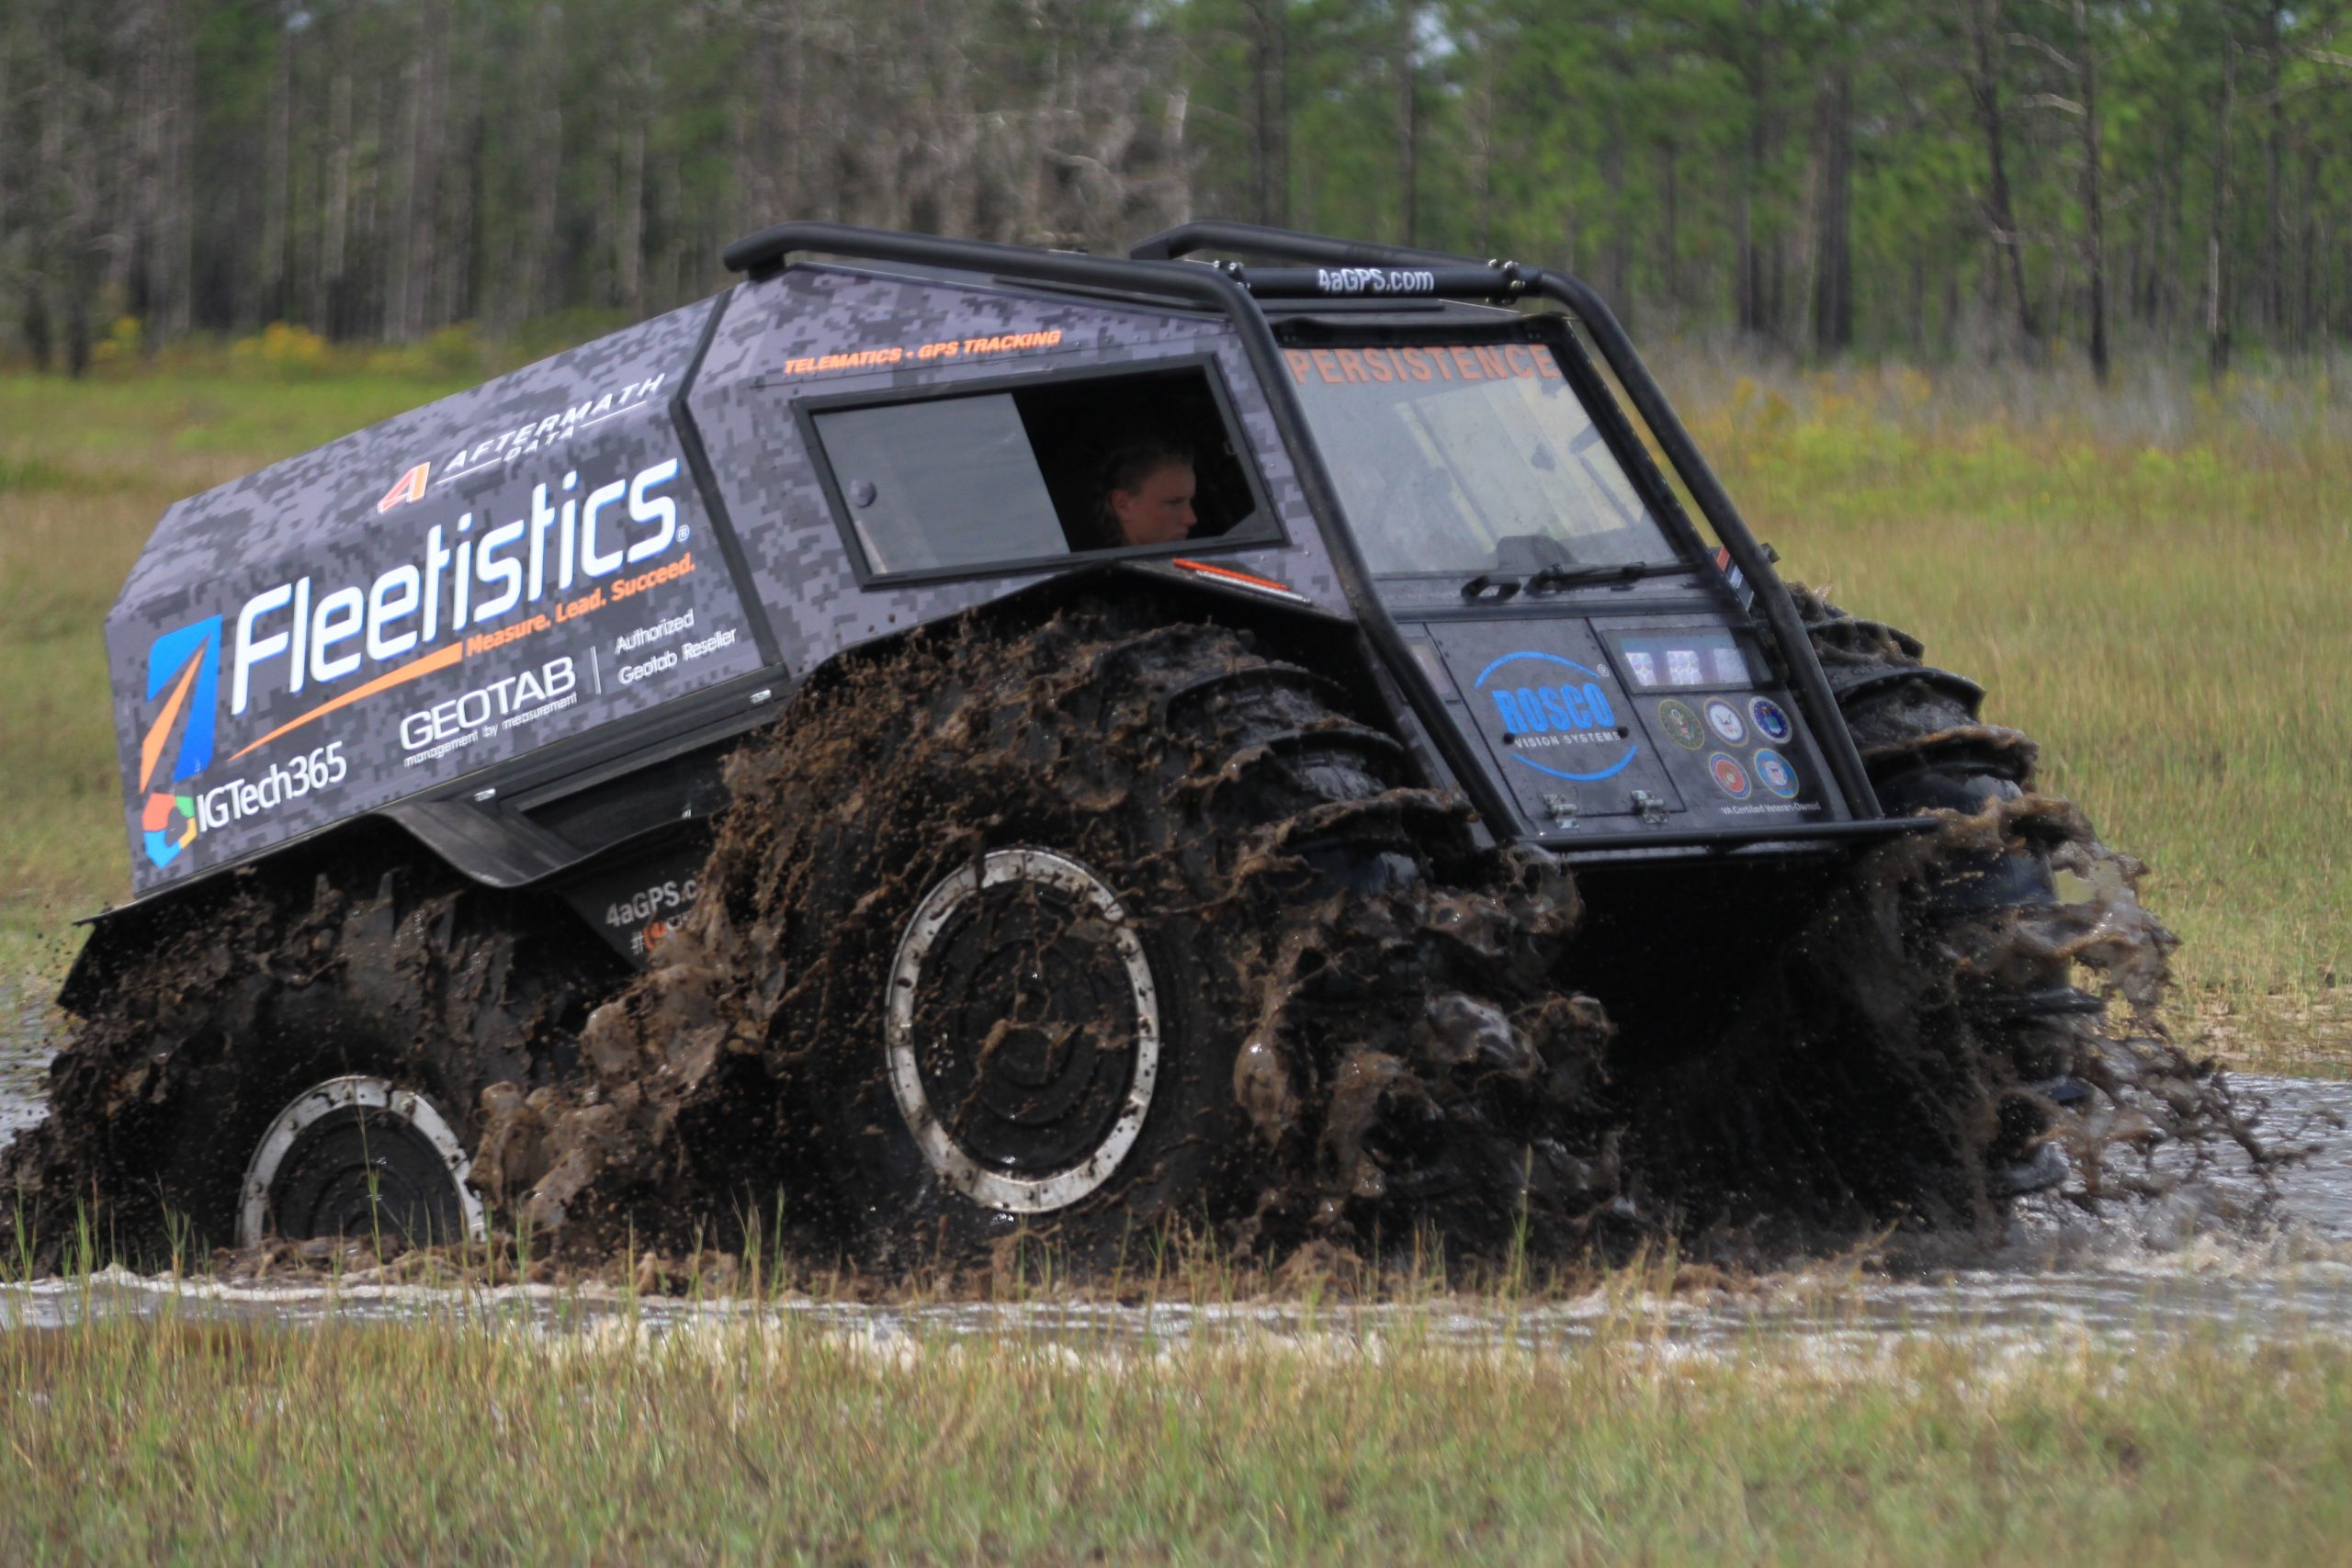 Sherp ATV Off-Road Mud